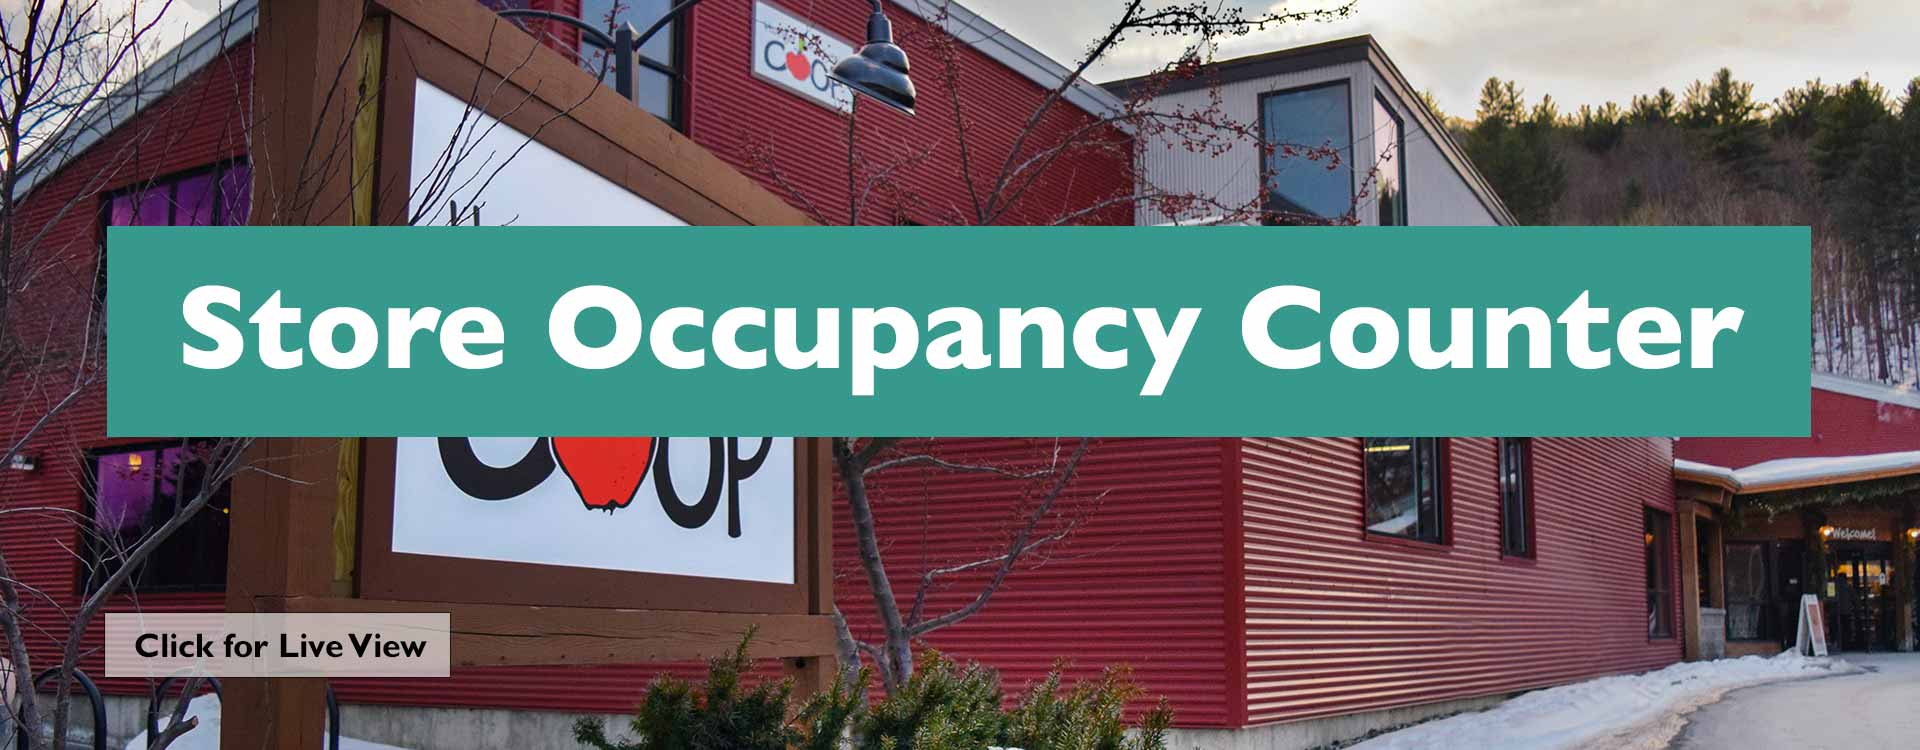 Store Occupancy